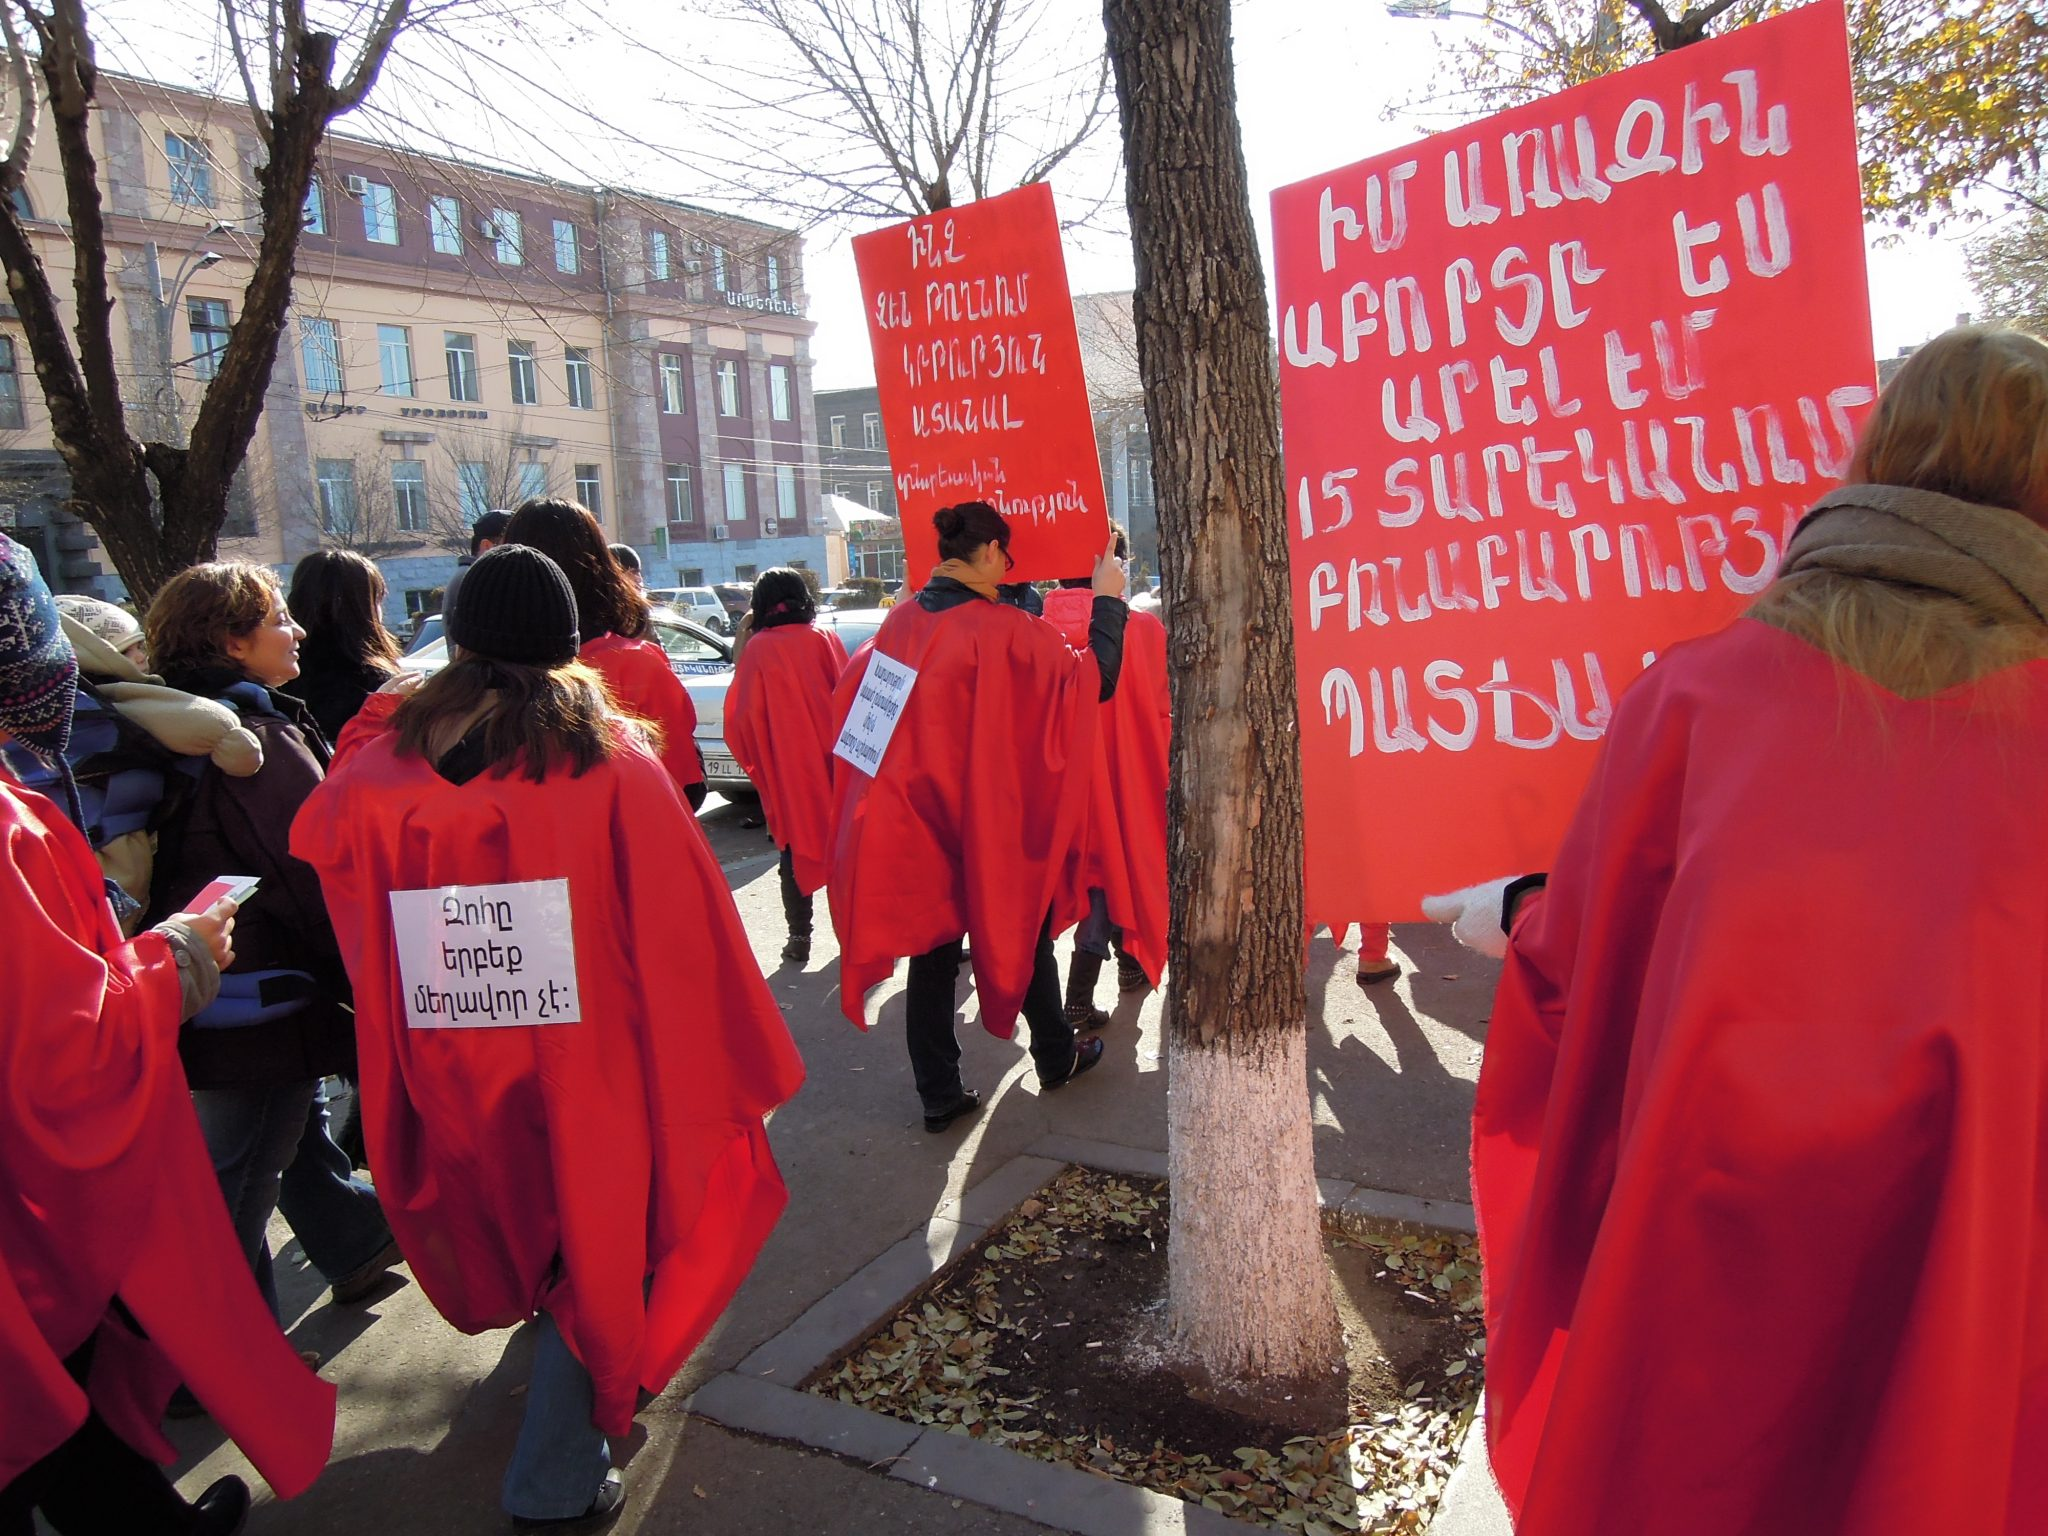 A protest march in Yerevan on November 25, the International Day for the Elimination of Violence against Women. Photo: Sara Hurtig.